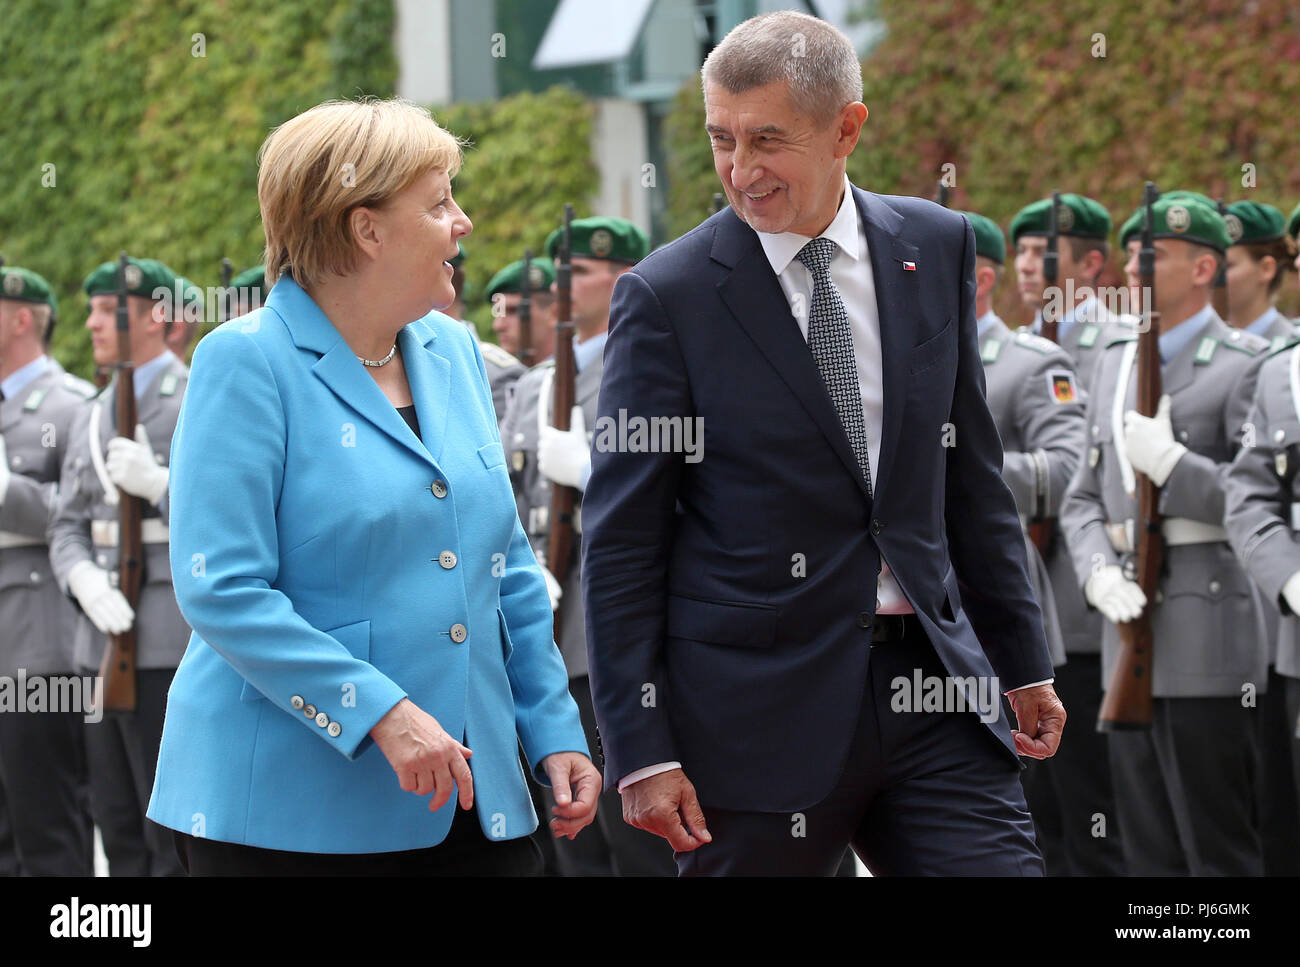 05.09.2018, Berlin: Federal Chancellor Angela Merkel of the Christian Democratic Union (CDU) welcomes the Czech Prime Minister Andrej Babis with military honours before the Federal Chancellery. Photo: Wolfgang Kumm/dpa - Stock Image